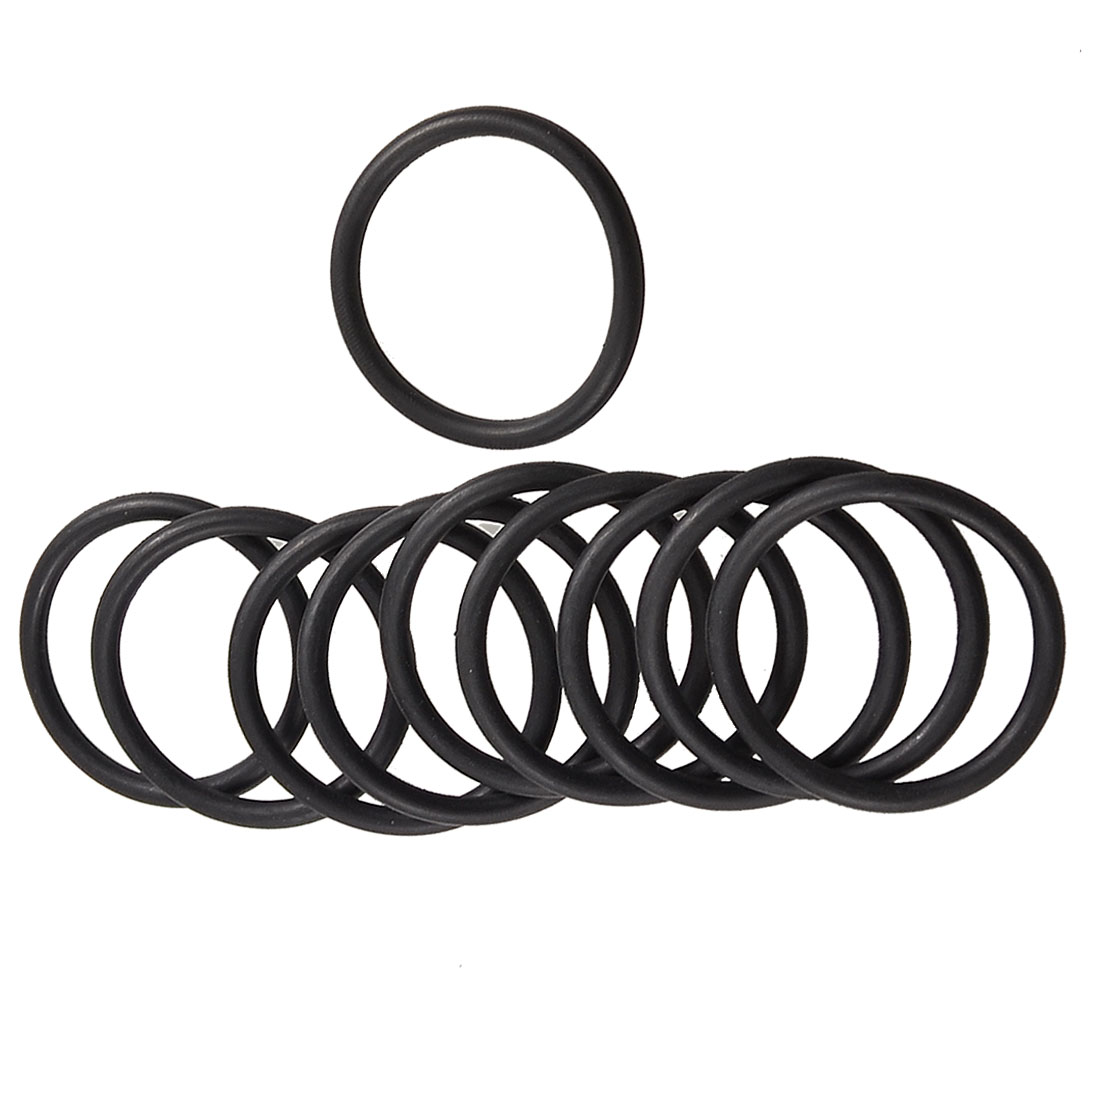 10 Pcs 35mm x 28mm x 3.1mm Mechanical Rubber O Ring Oil Seal Gaskets Black